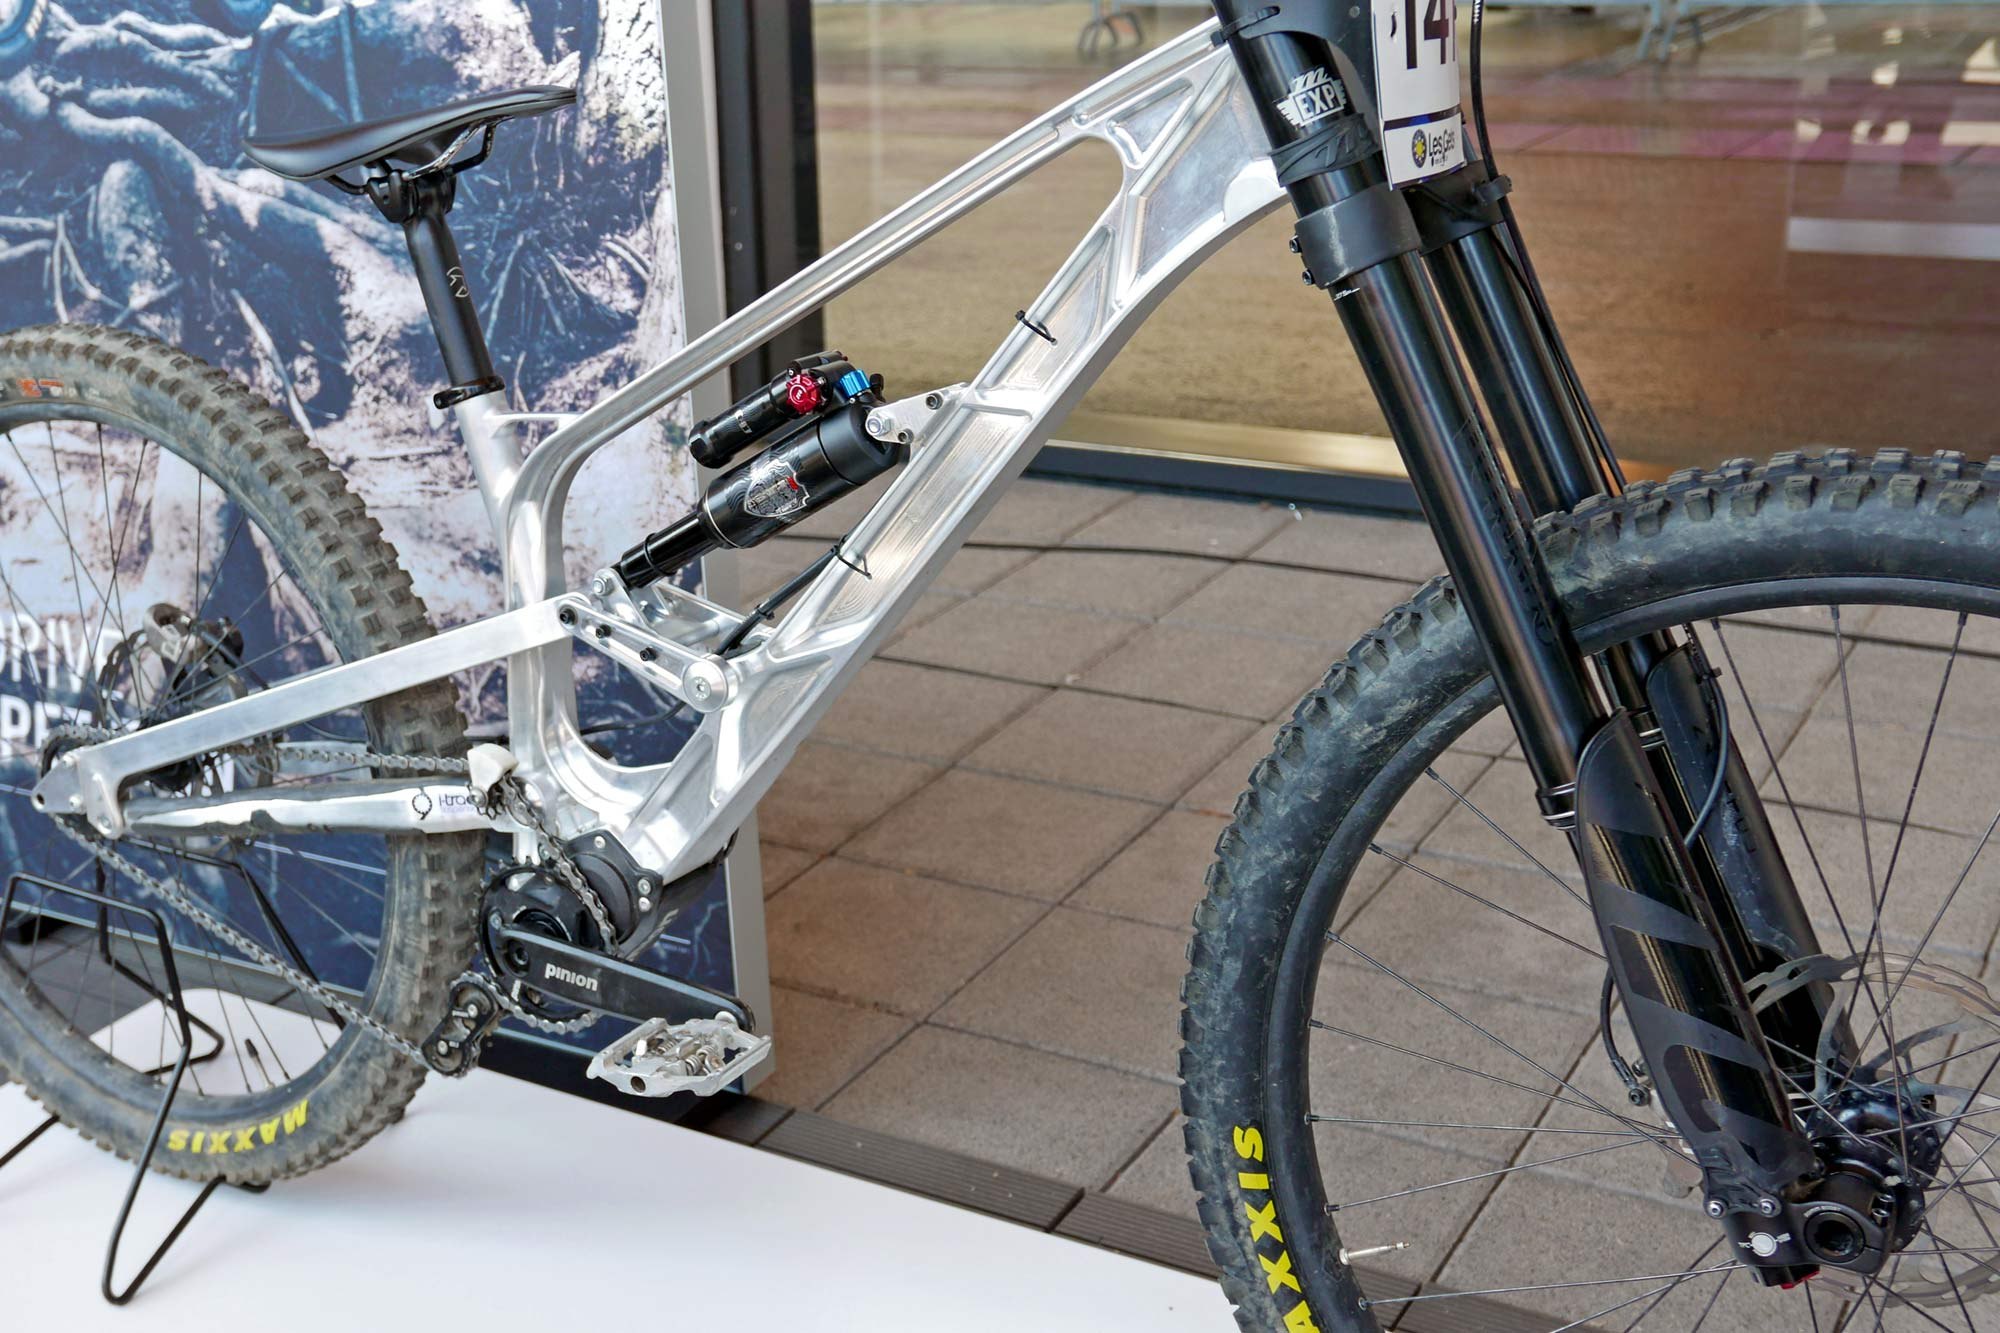 Gamux CNC 197 Gearbox DH, prototype Pinion gearbox downhill bike, angled front